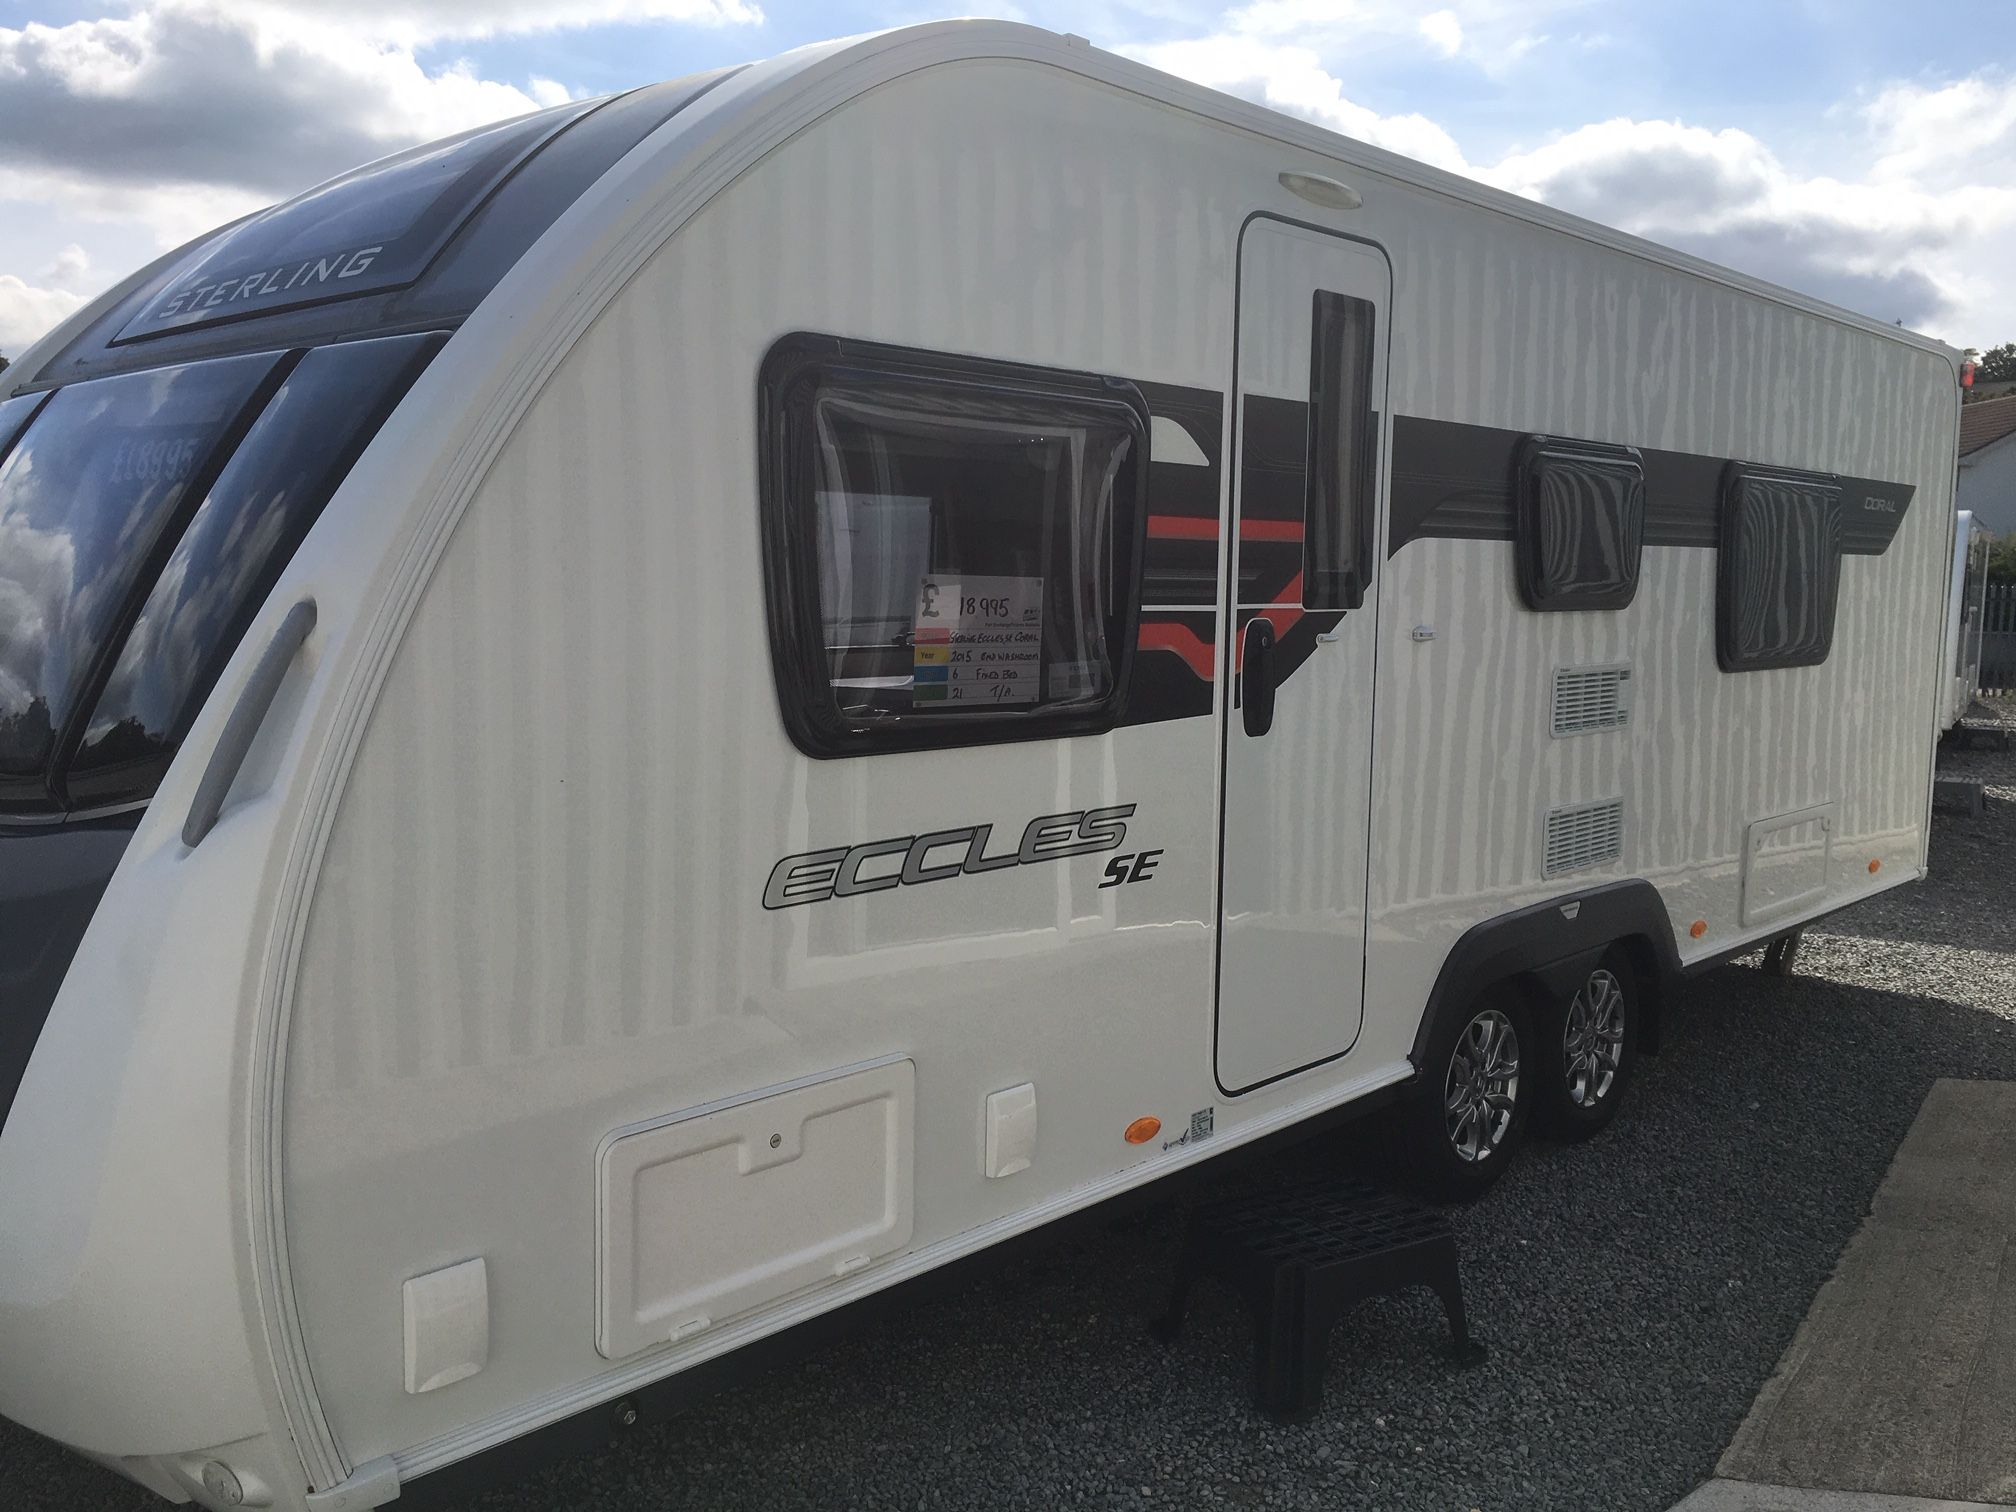 2015 STERLING ECCLES SE CAROL